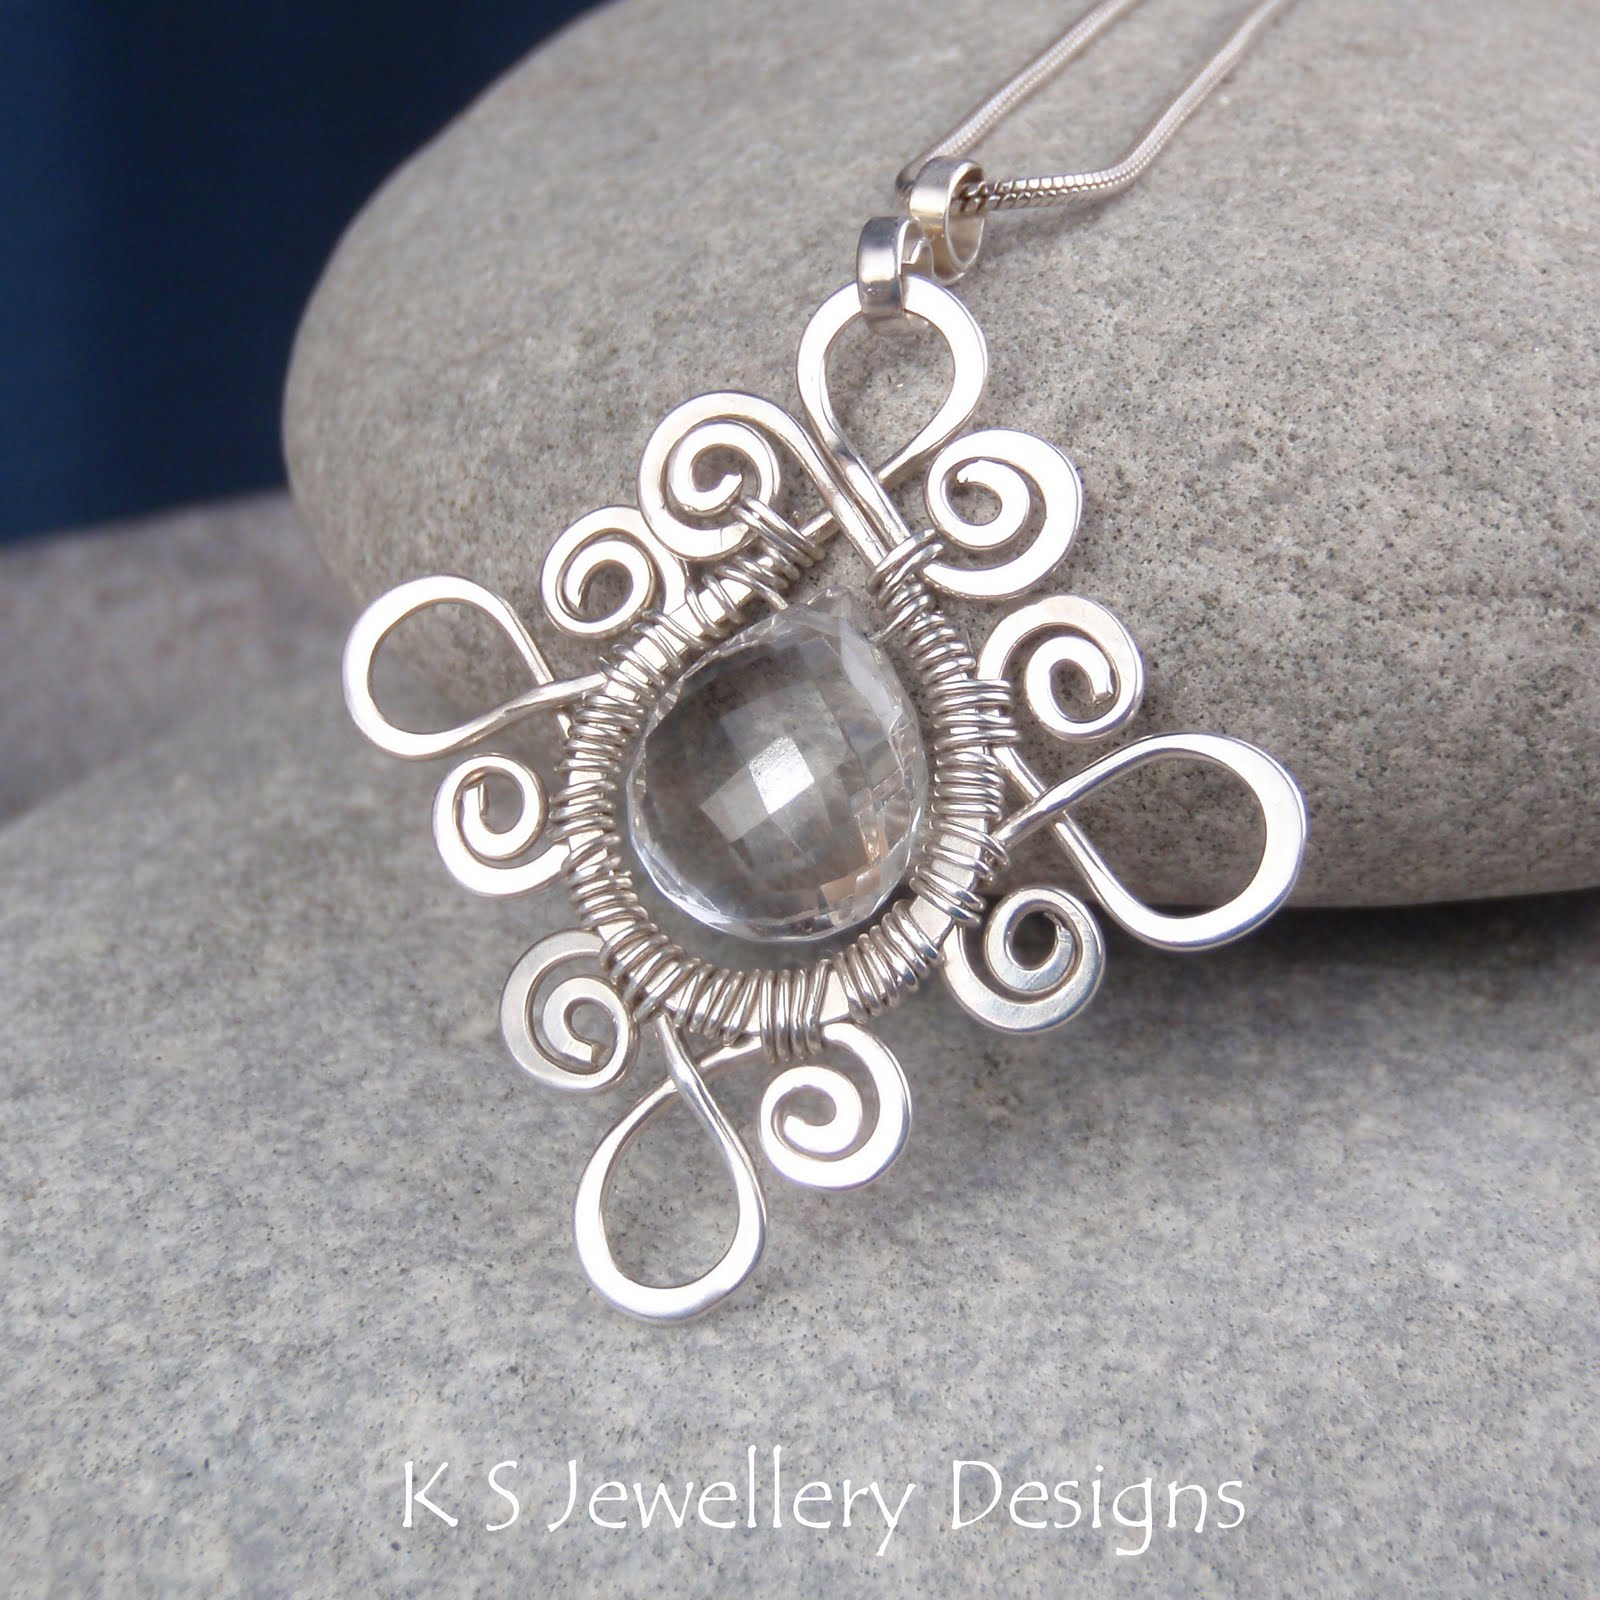 k s jewellery designs new wire jewelry tutorial sprial